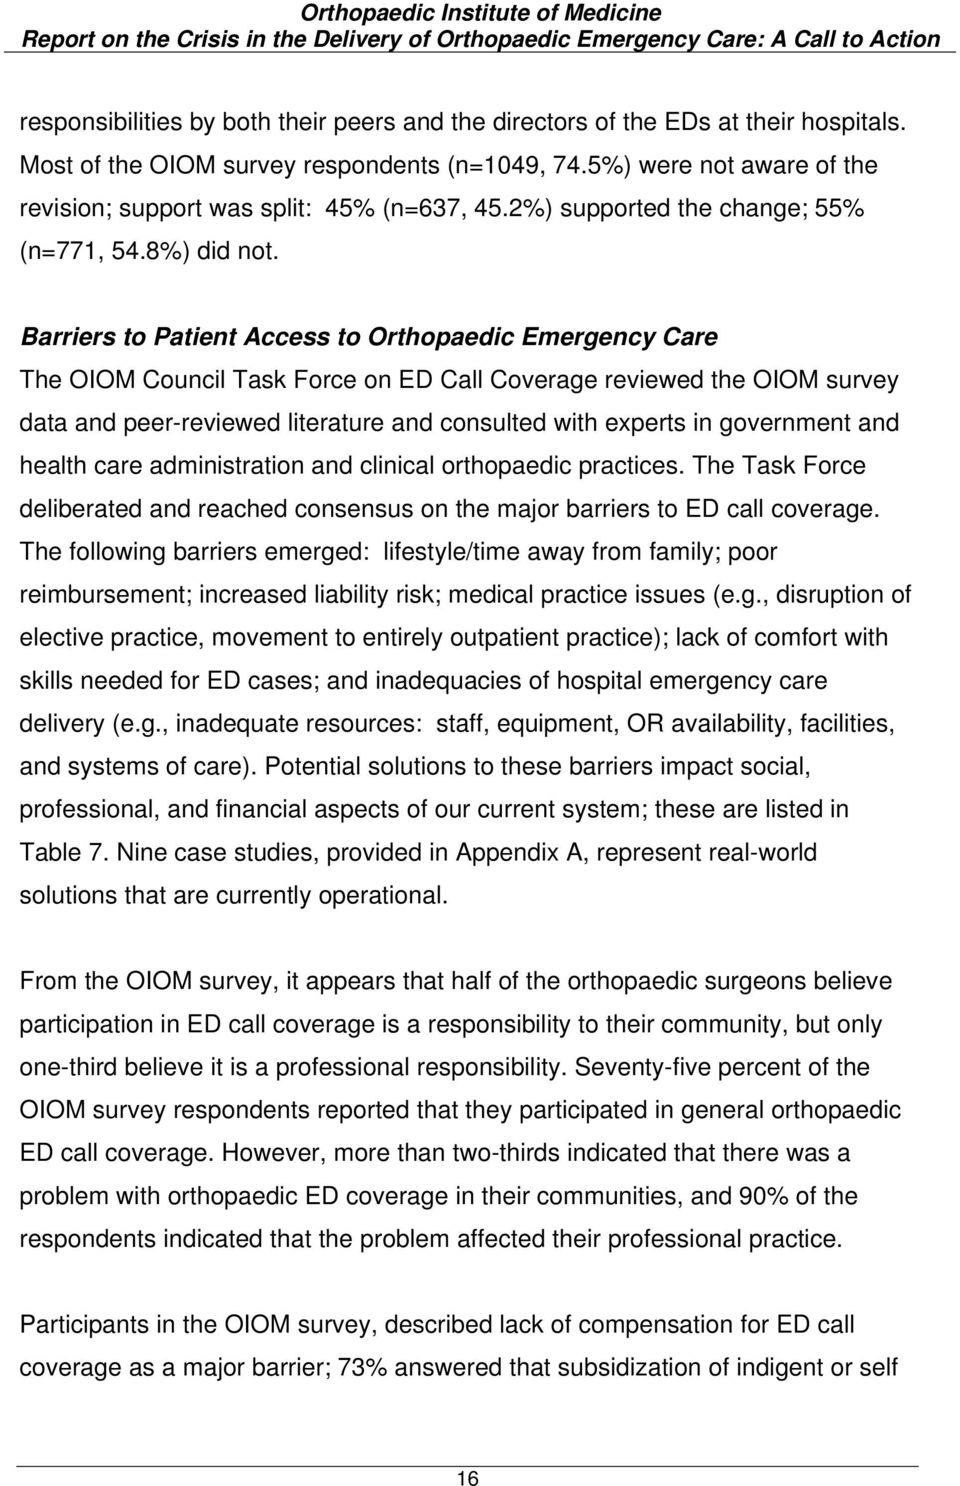 Barriers to Patient Access to Orthopaedic Emergency Care The OIOM Council Task Force on ED Call Coverage reviewed the OIOM survey data and peer-reviewed literature and consulted with experts in